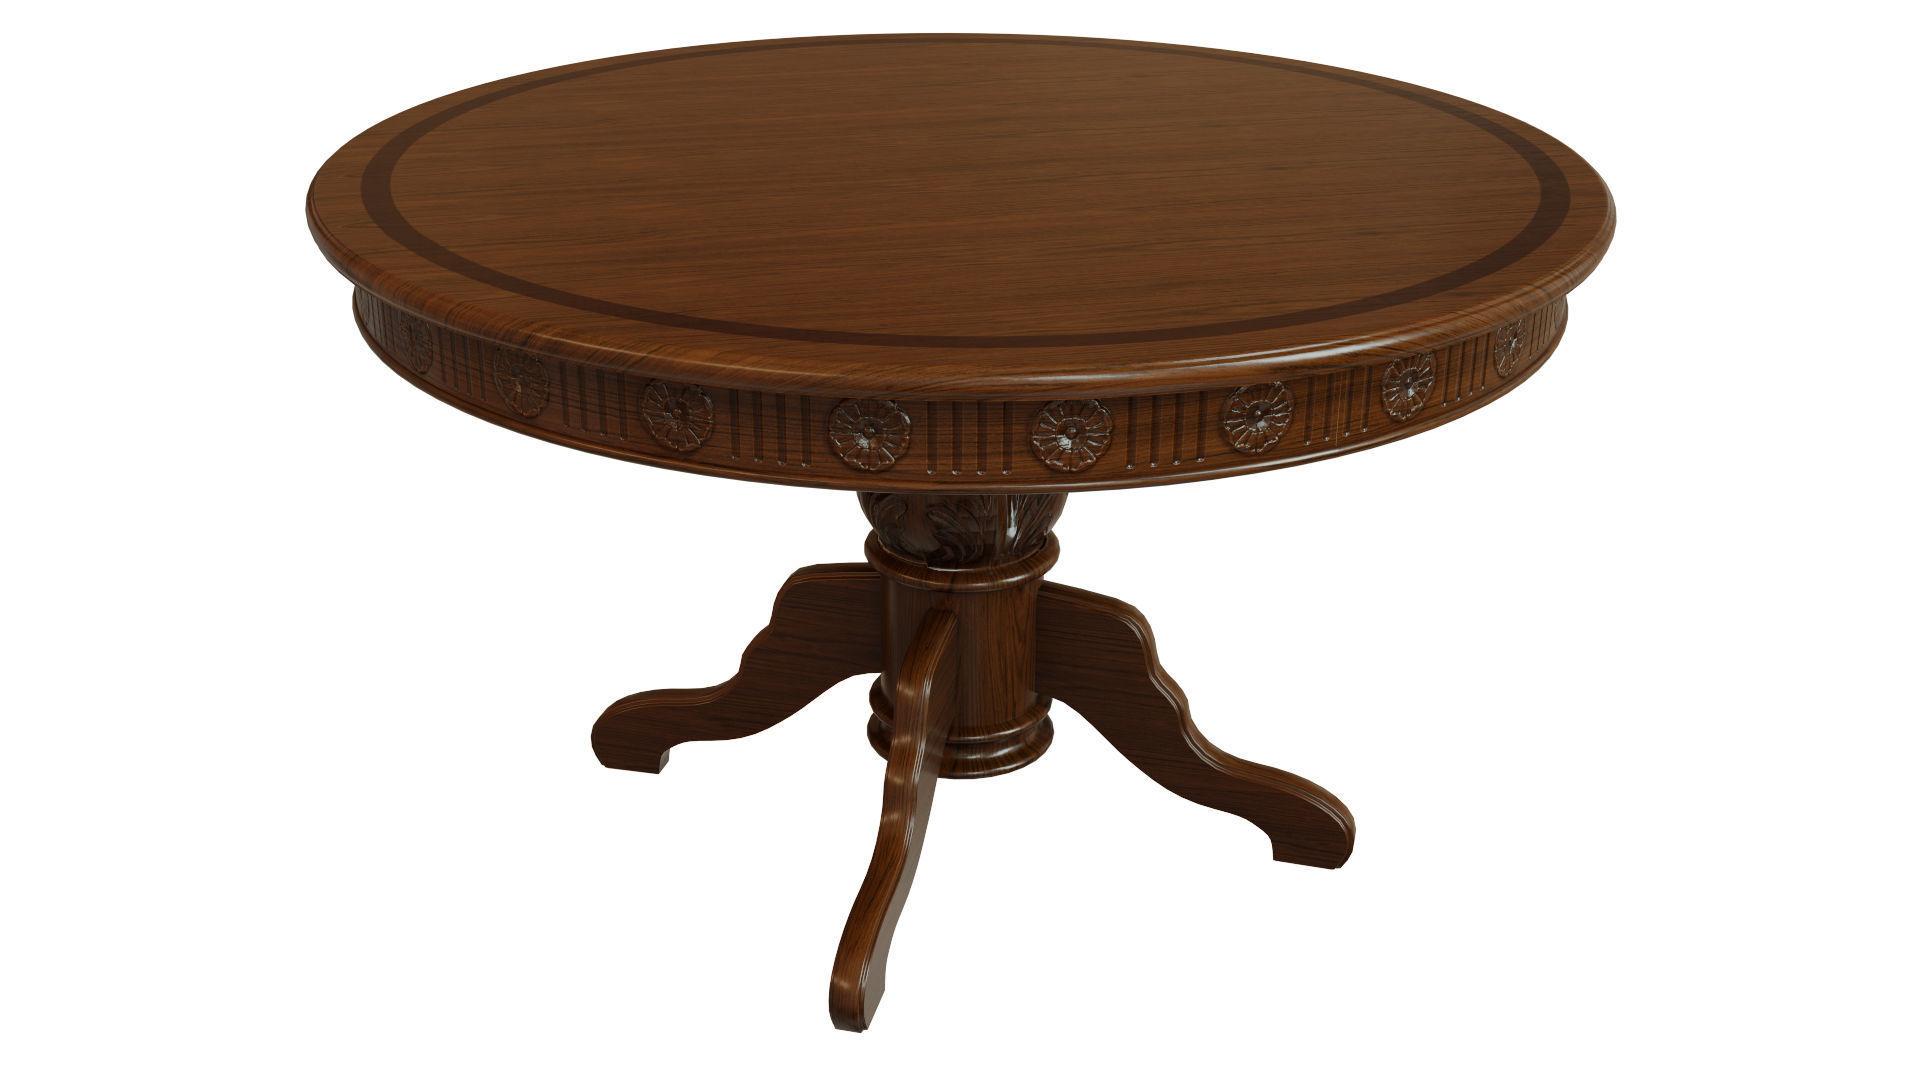 Wooden table with carvings 1200